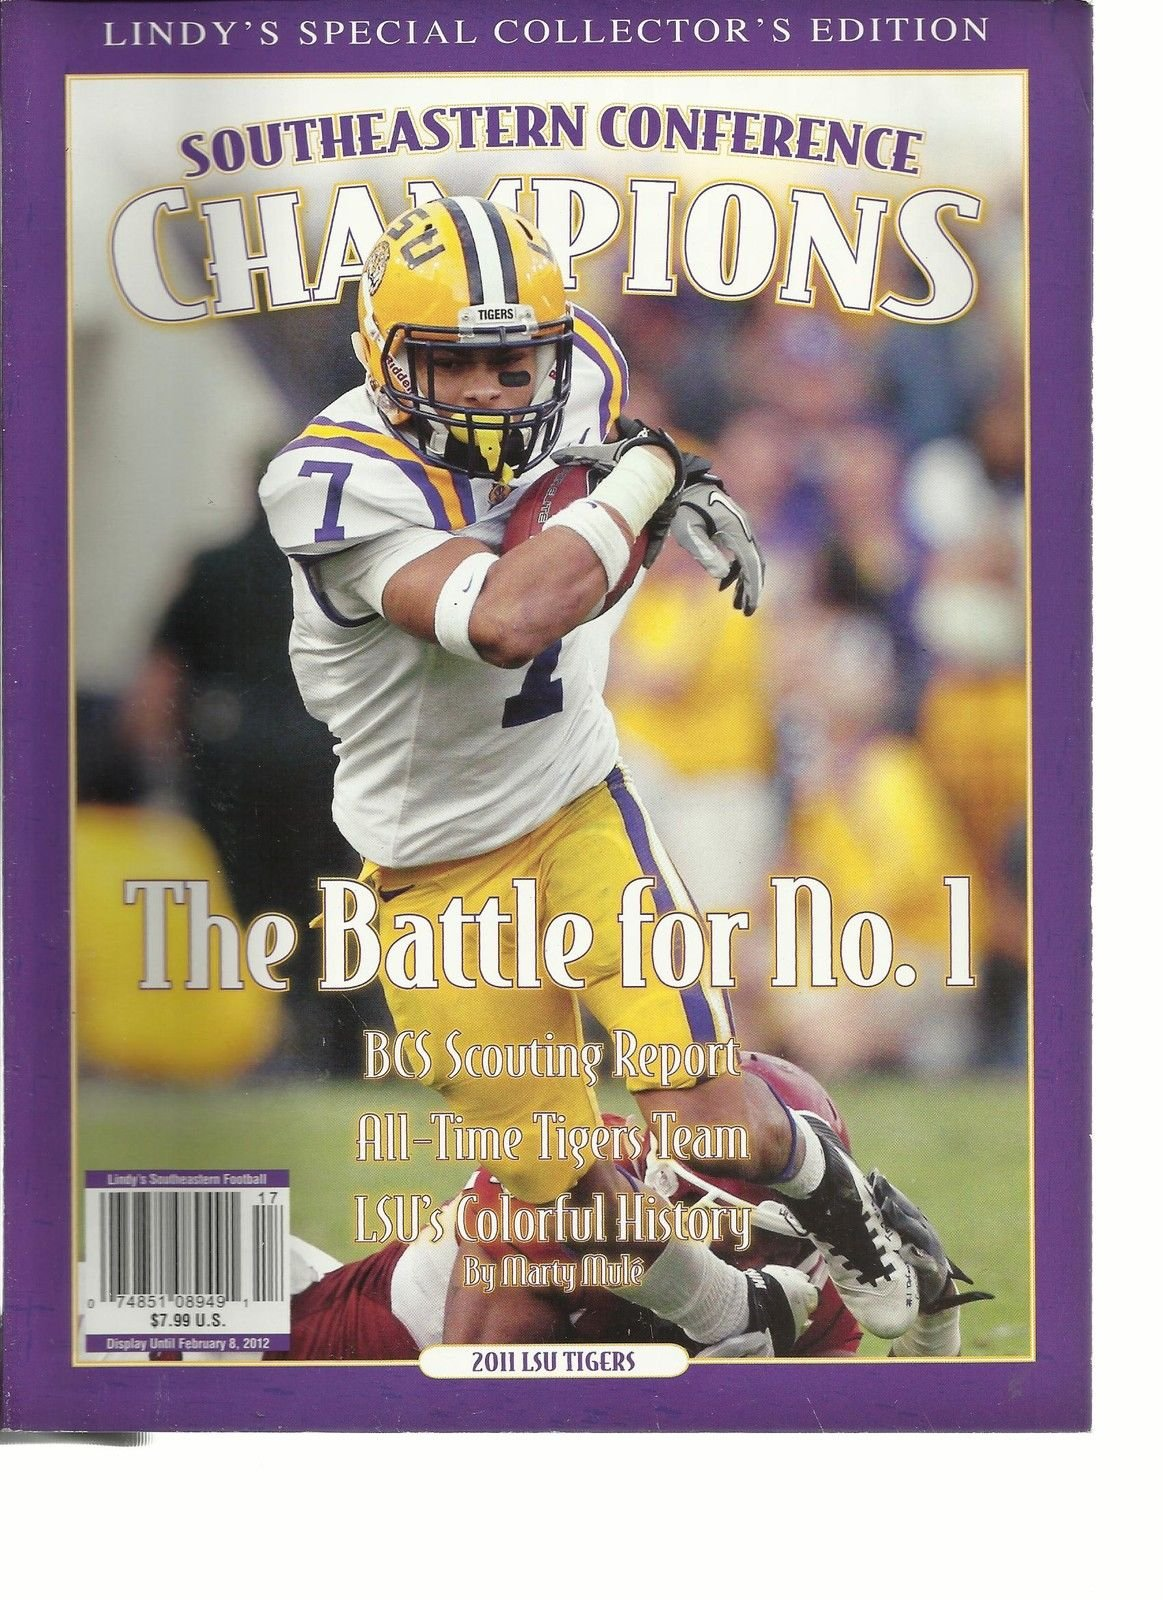 SOUTHEASTERN CONFERENCE CHAMPIONS, LINDY'S SPECIAL COLLECTOR'S EDITION